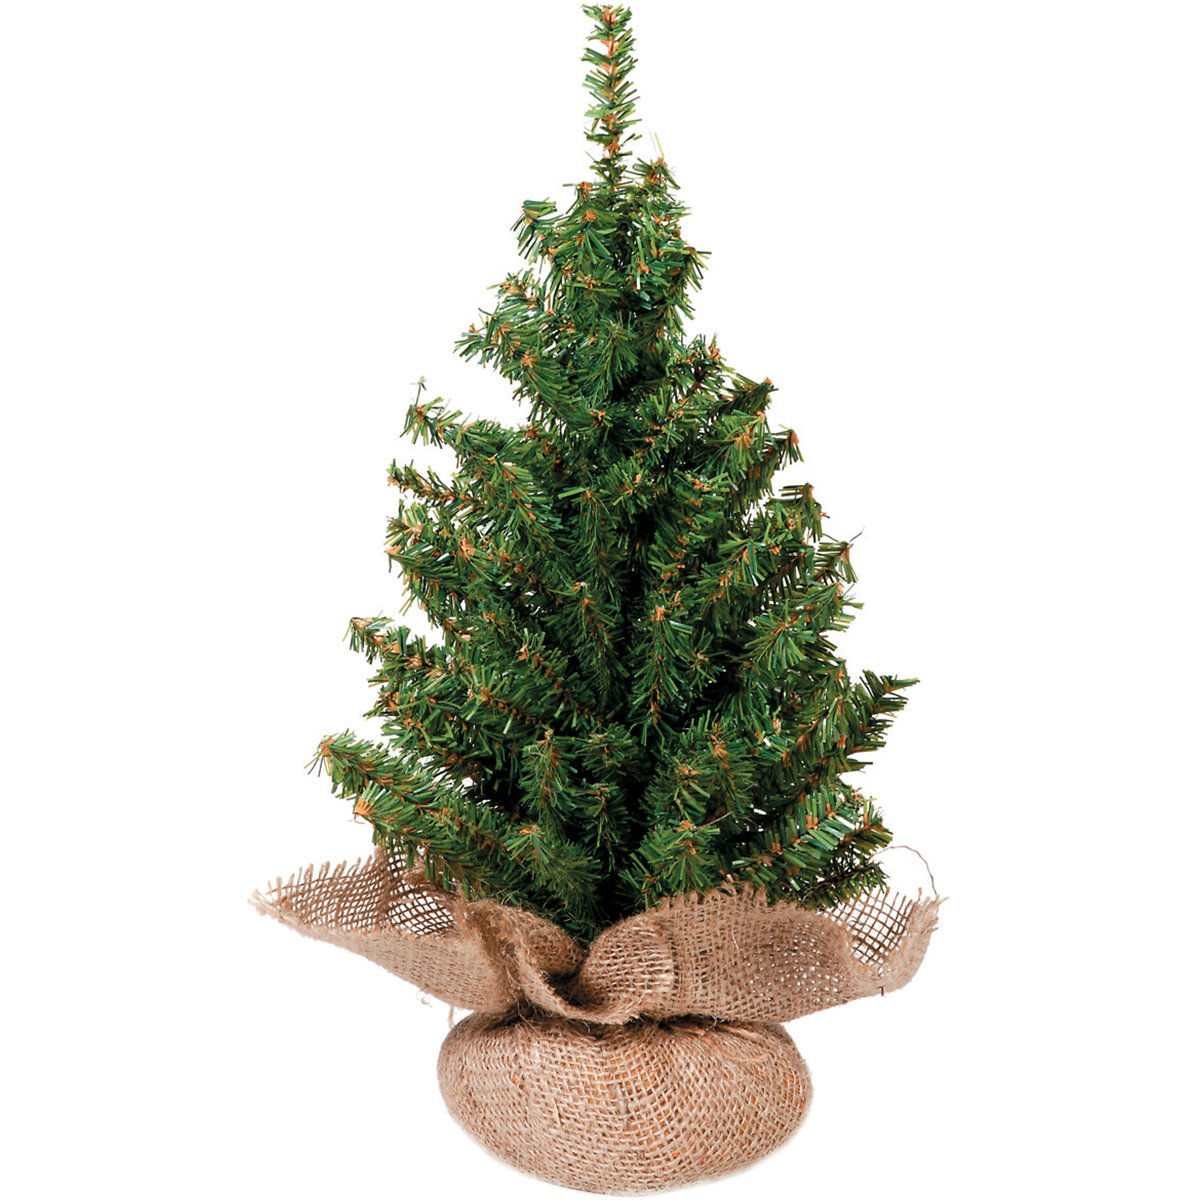 Mixed Canadian Tree with Burlap Base - 124 Tips - 18 inches (1 pack)